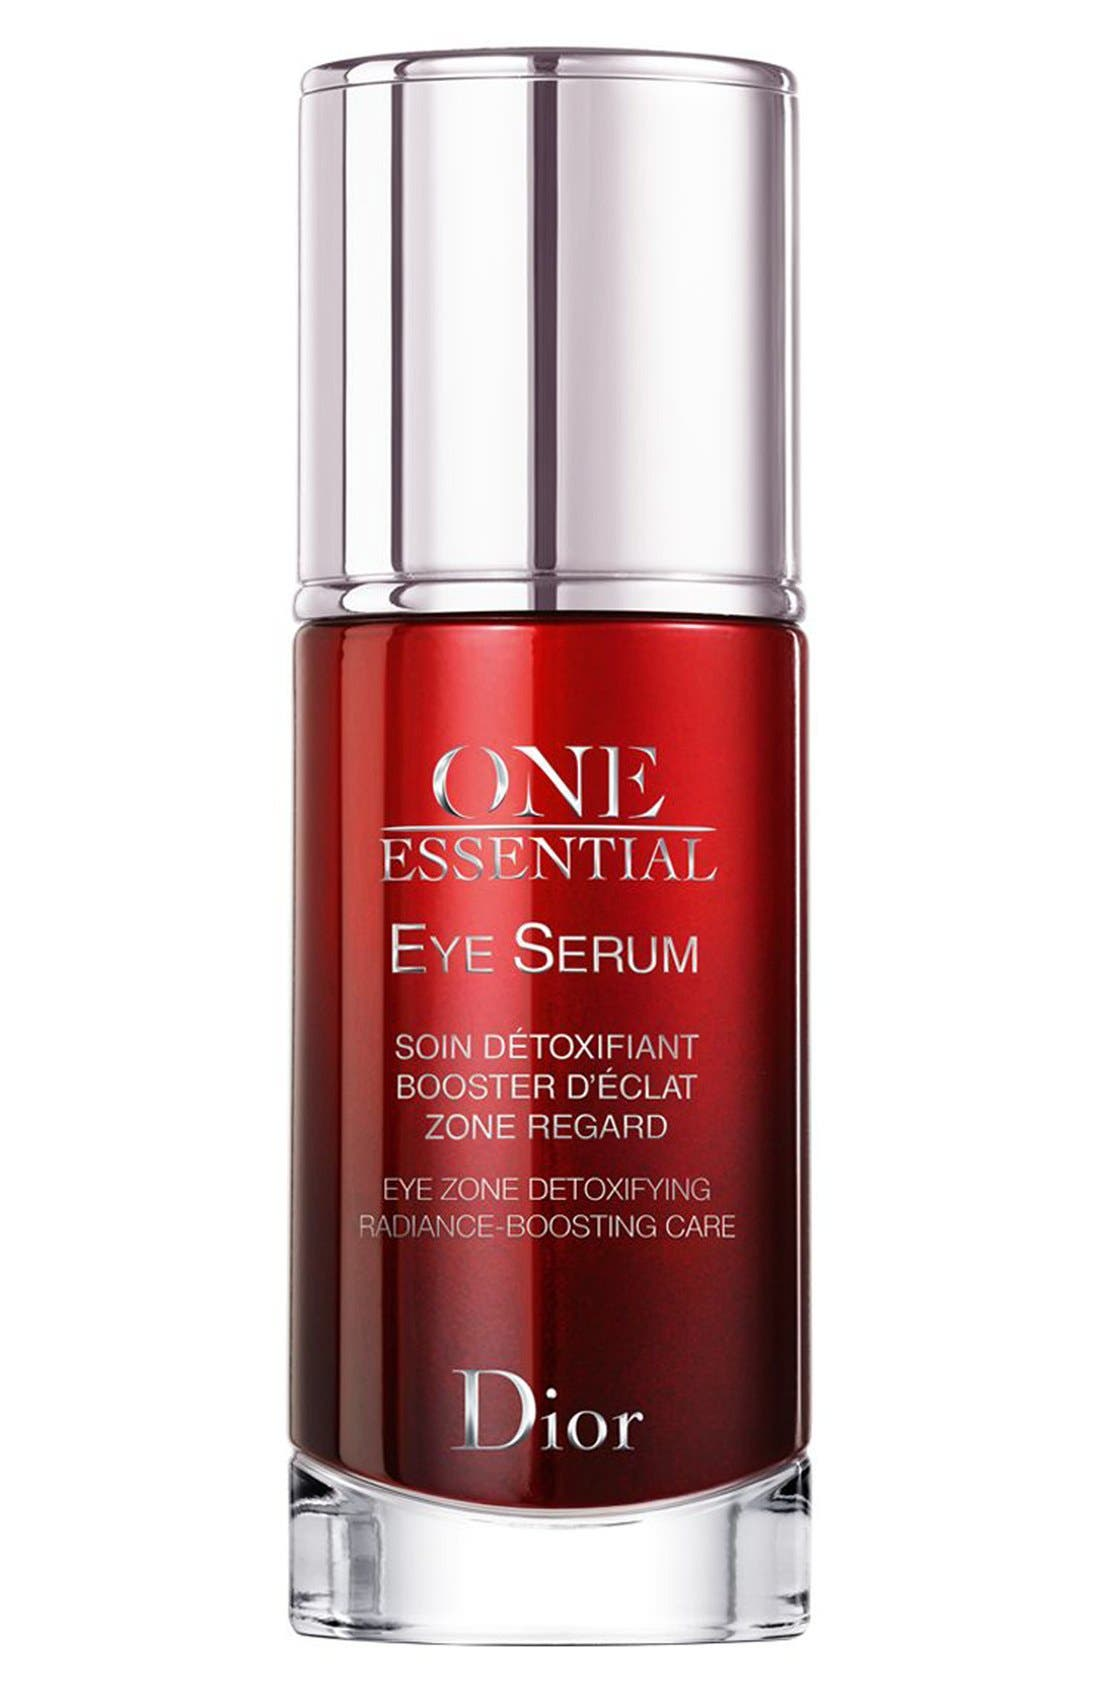 Dior 'One Essential' Eye Serum